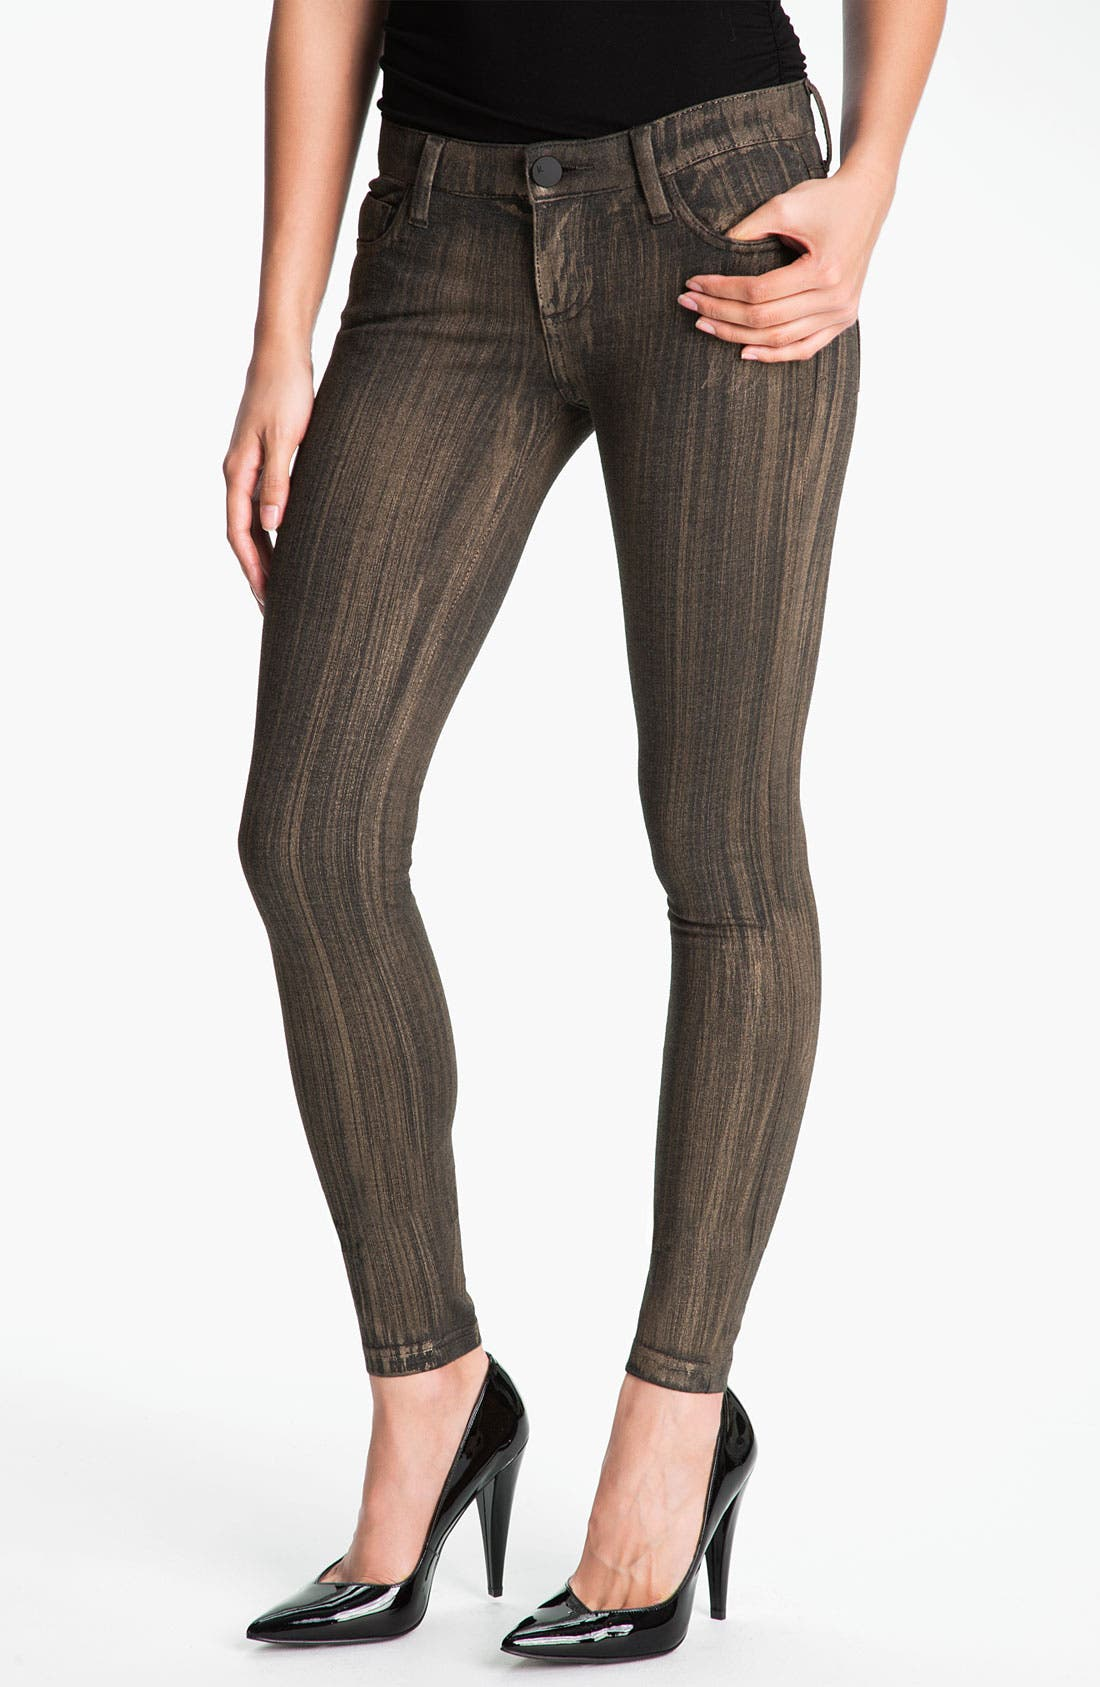 Alternate Image 1 Selected - KUT from the Kloth 'Jennifer' Skinny Stretch Jeans (Online Exclusive)